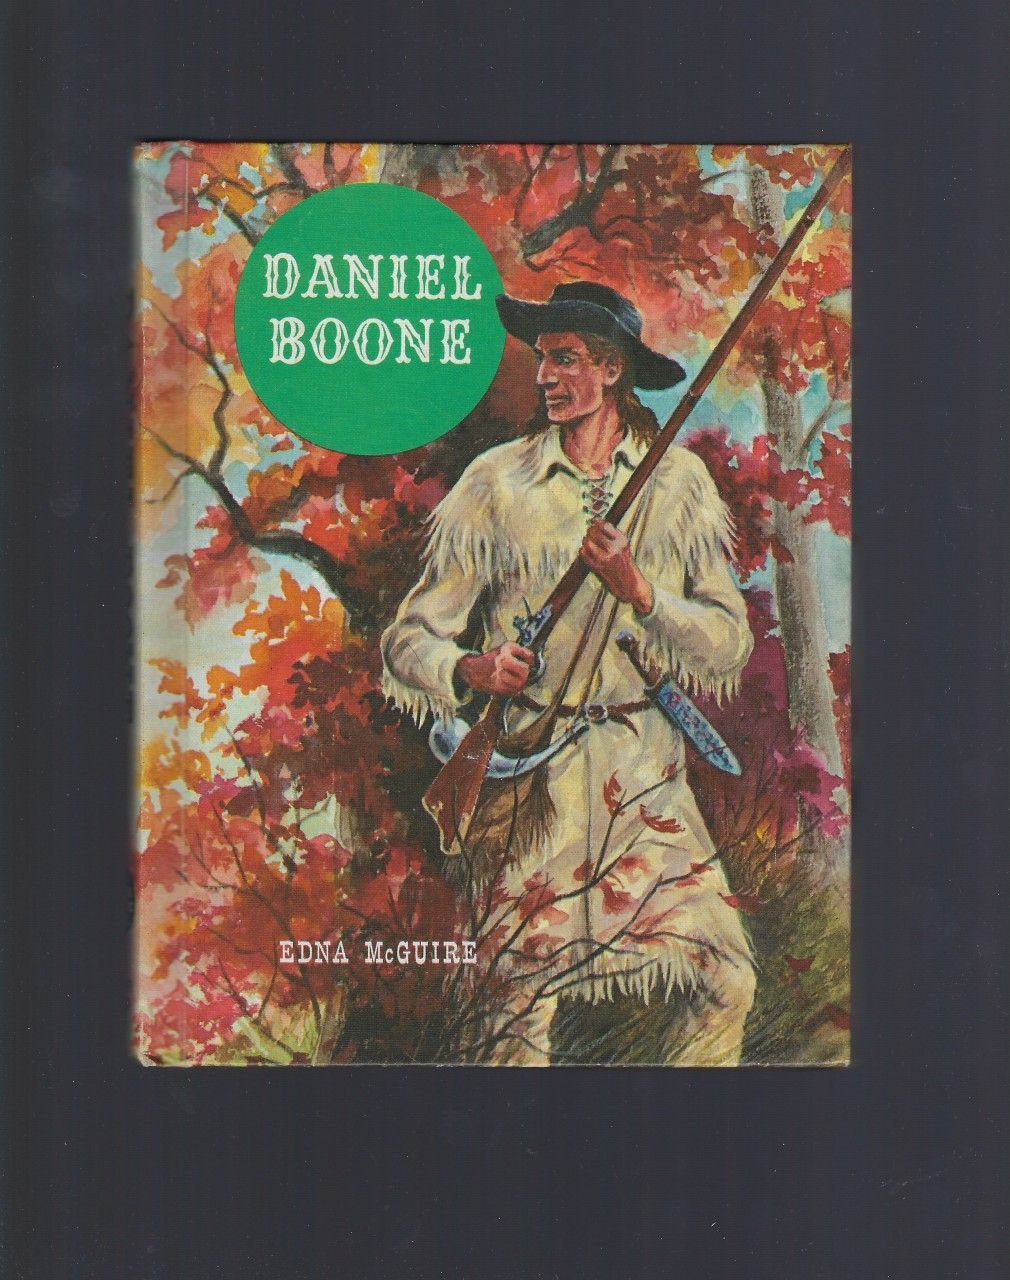 Daniel Boone (The American Adventure Series) 1961, Edna McGuire